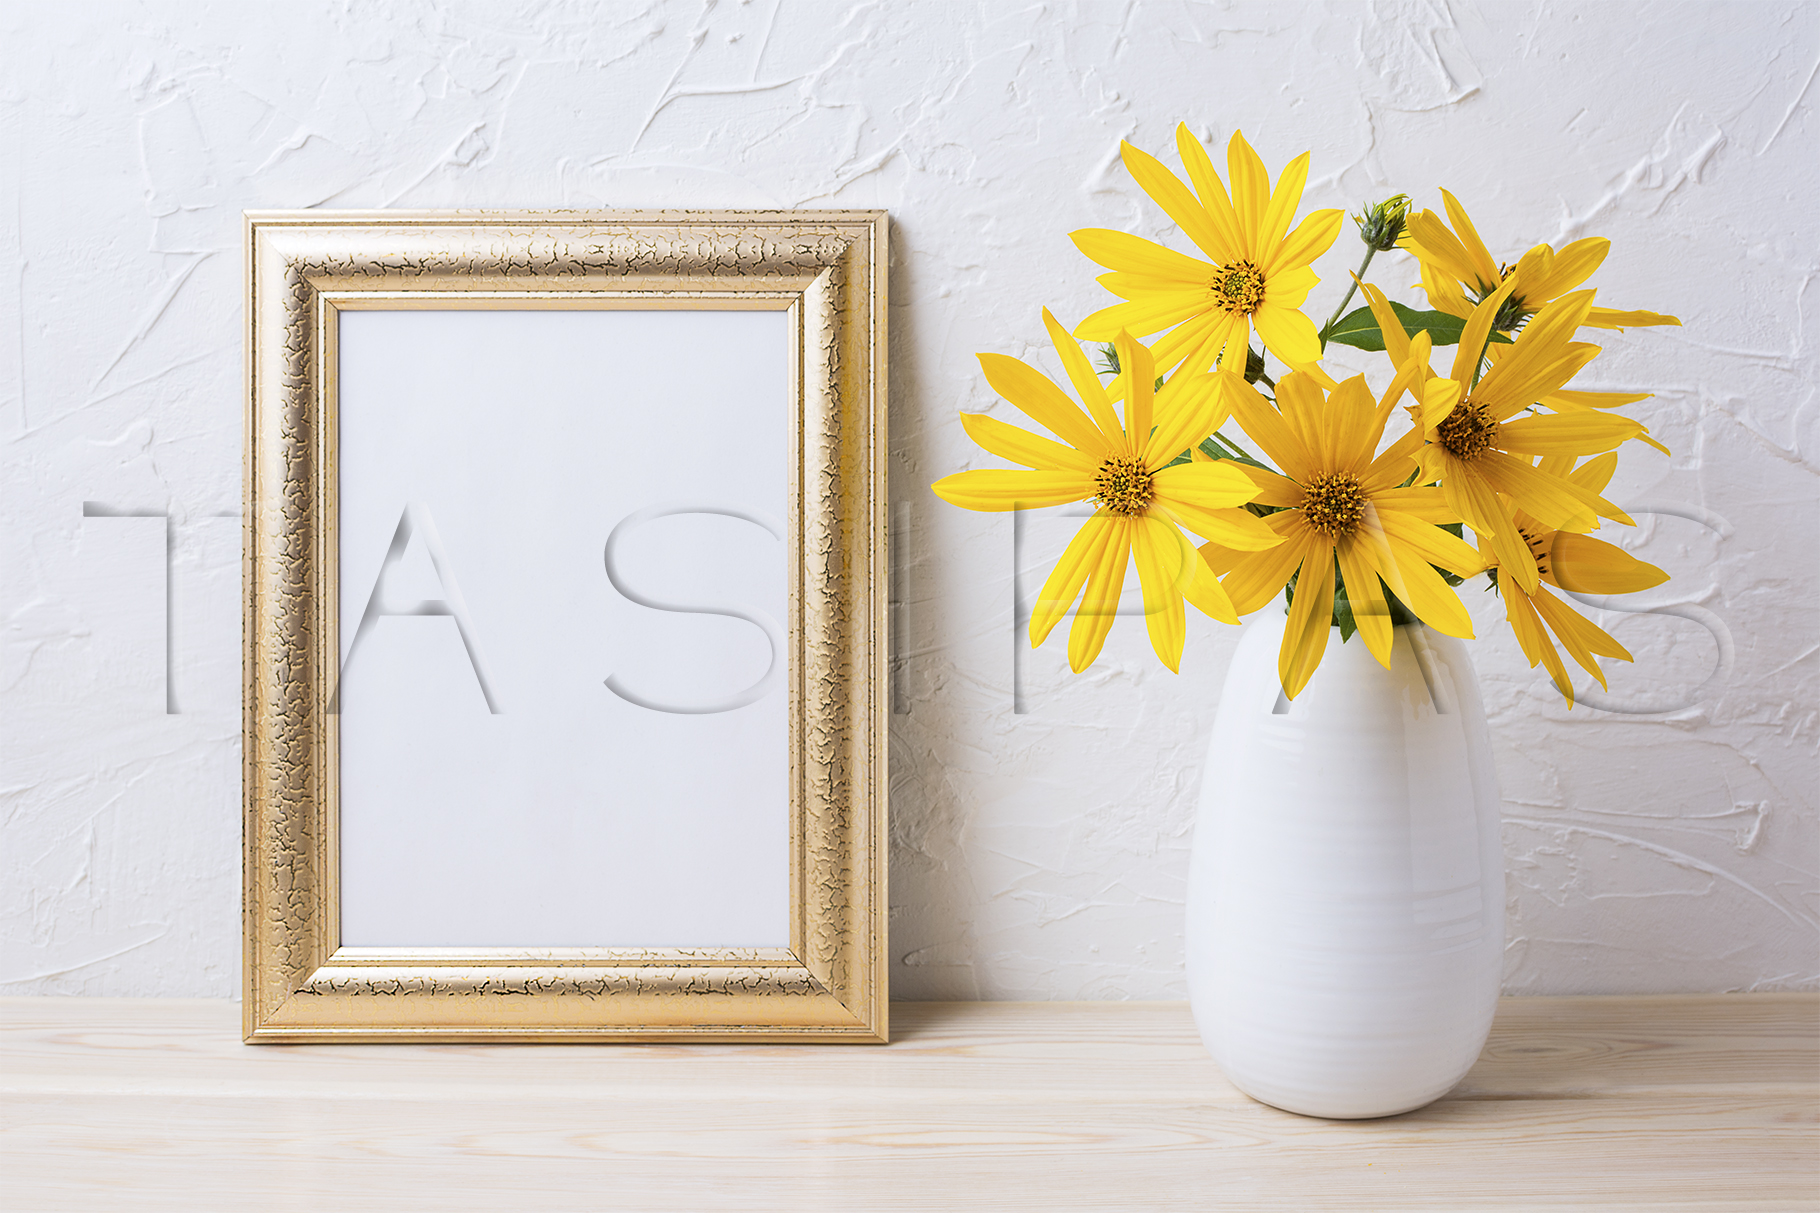 Golden frame mockup with yellow rosinweed flowers in vase example image 2